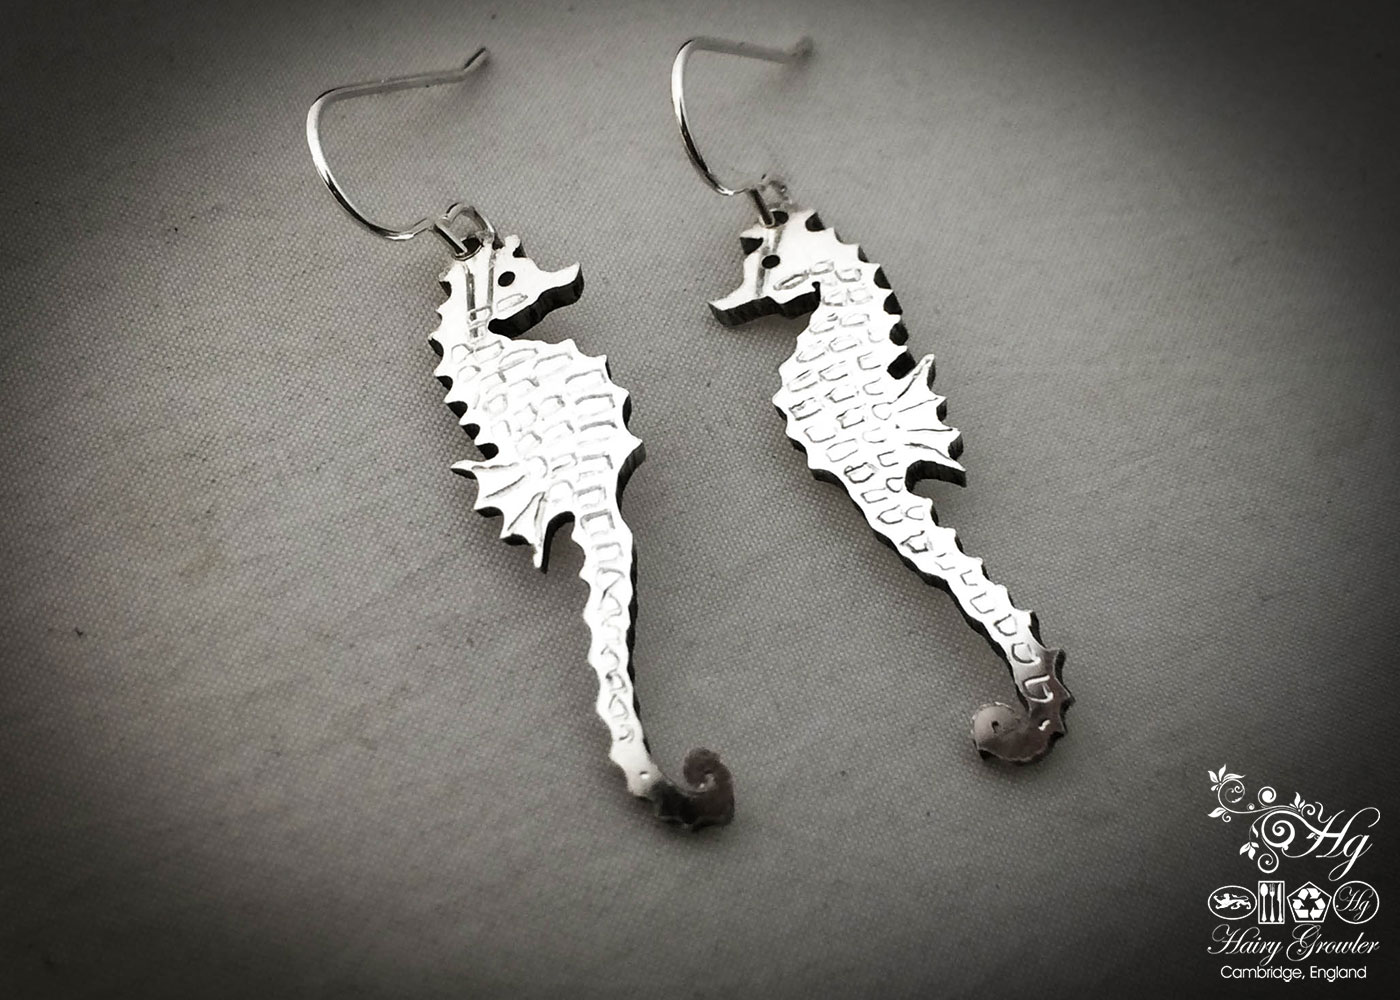 The Official Hairy Growler Jewellery Co. Cambridge - handcrafted and recycled spoon seahorse earrings